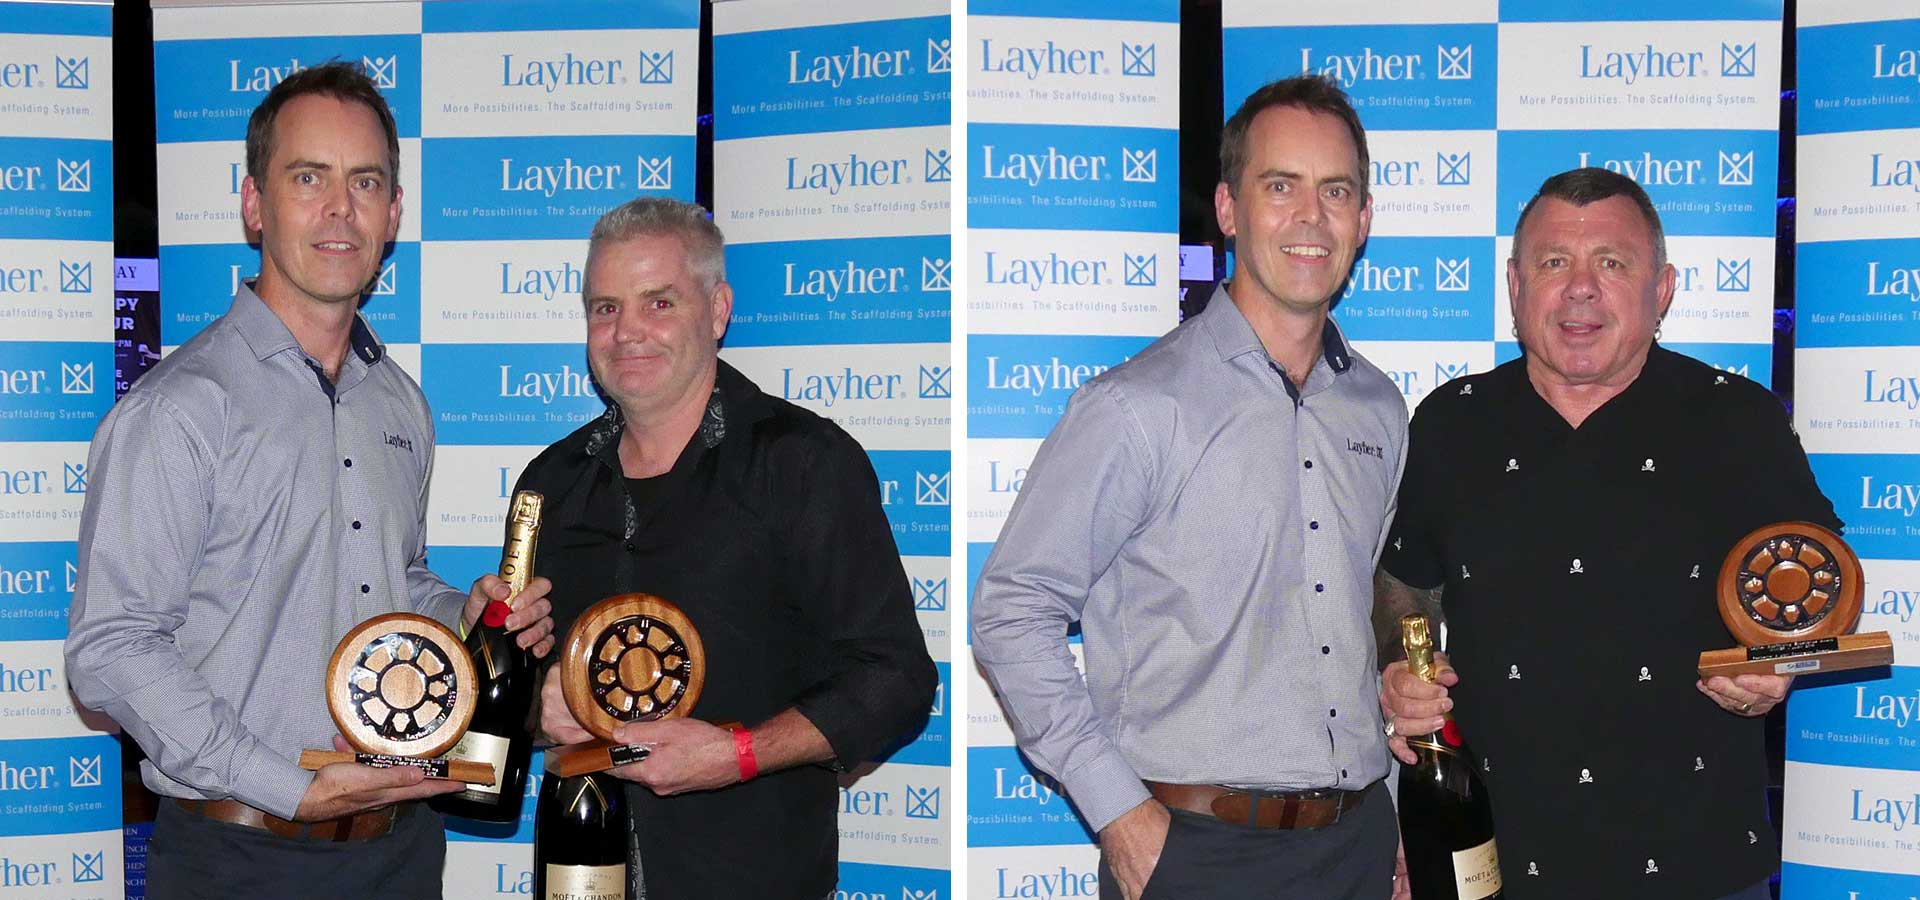 Scott Bergstrom, Managing Director Layher New Zealand presents Layher Scaffolding Excellence Awards winning trophies to Glen Brazier of Brazier Scaffolding (left photo) and Mick Curran of Upright Access Systems (right photo)